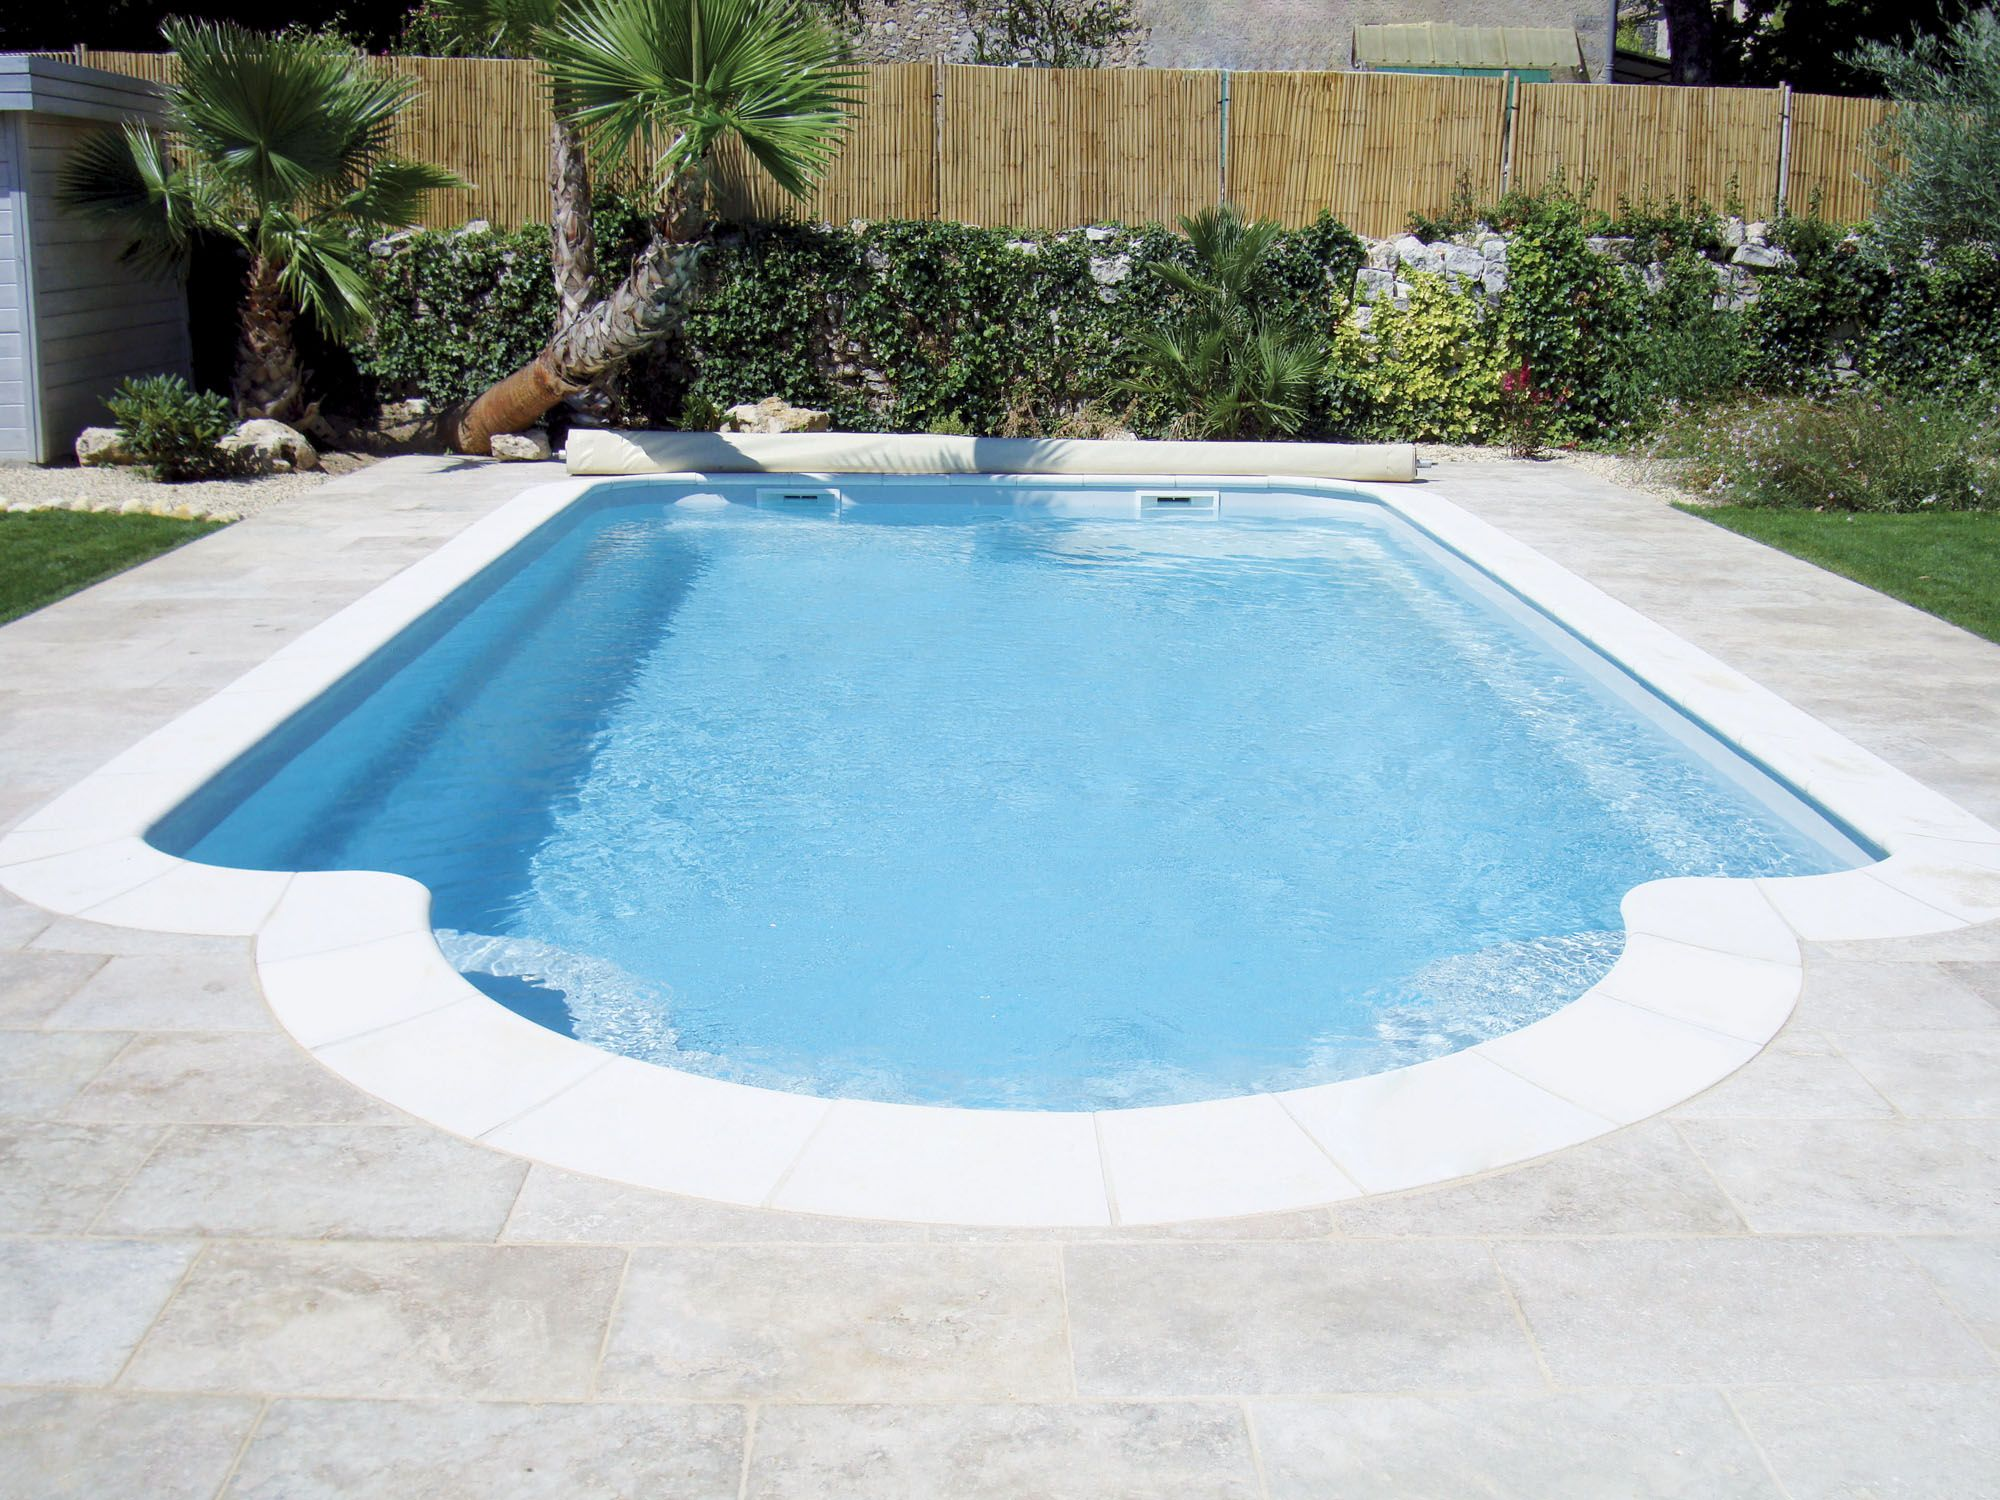 Piscine coque polyester arp ge fabrication fran aise for Piscine romaine